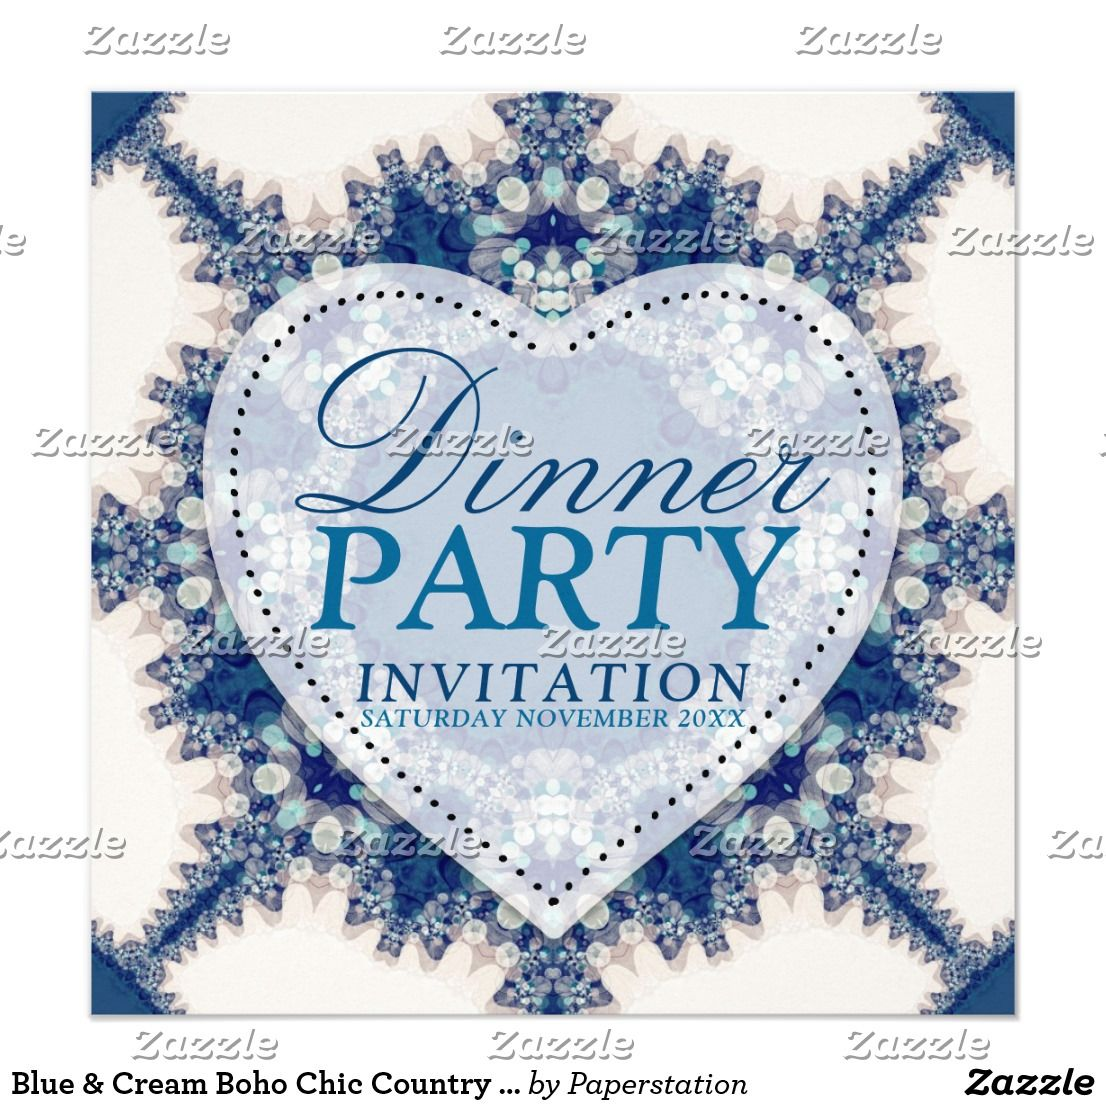 Blue & Cream Boho Chic Country Dinner Party Card